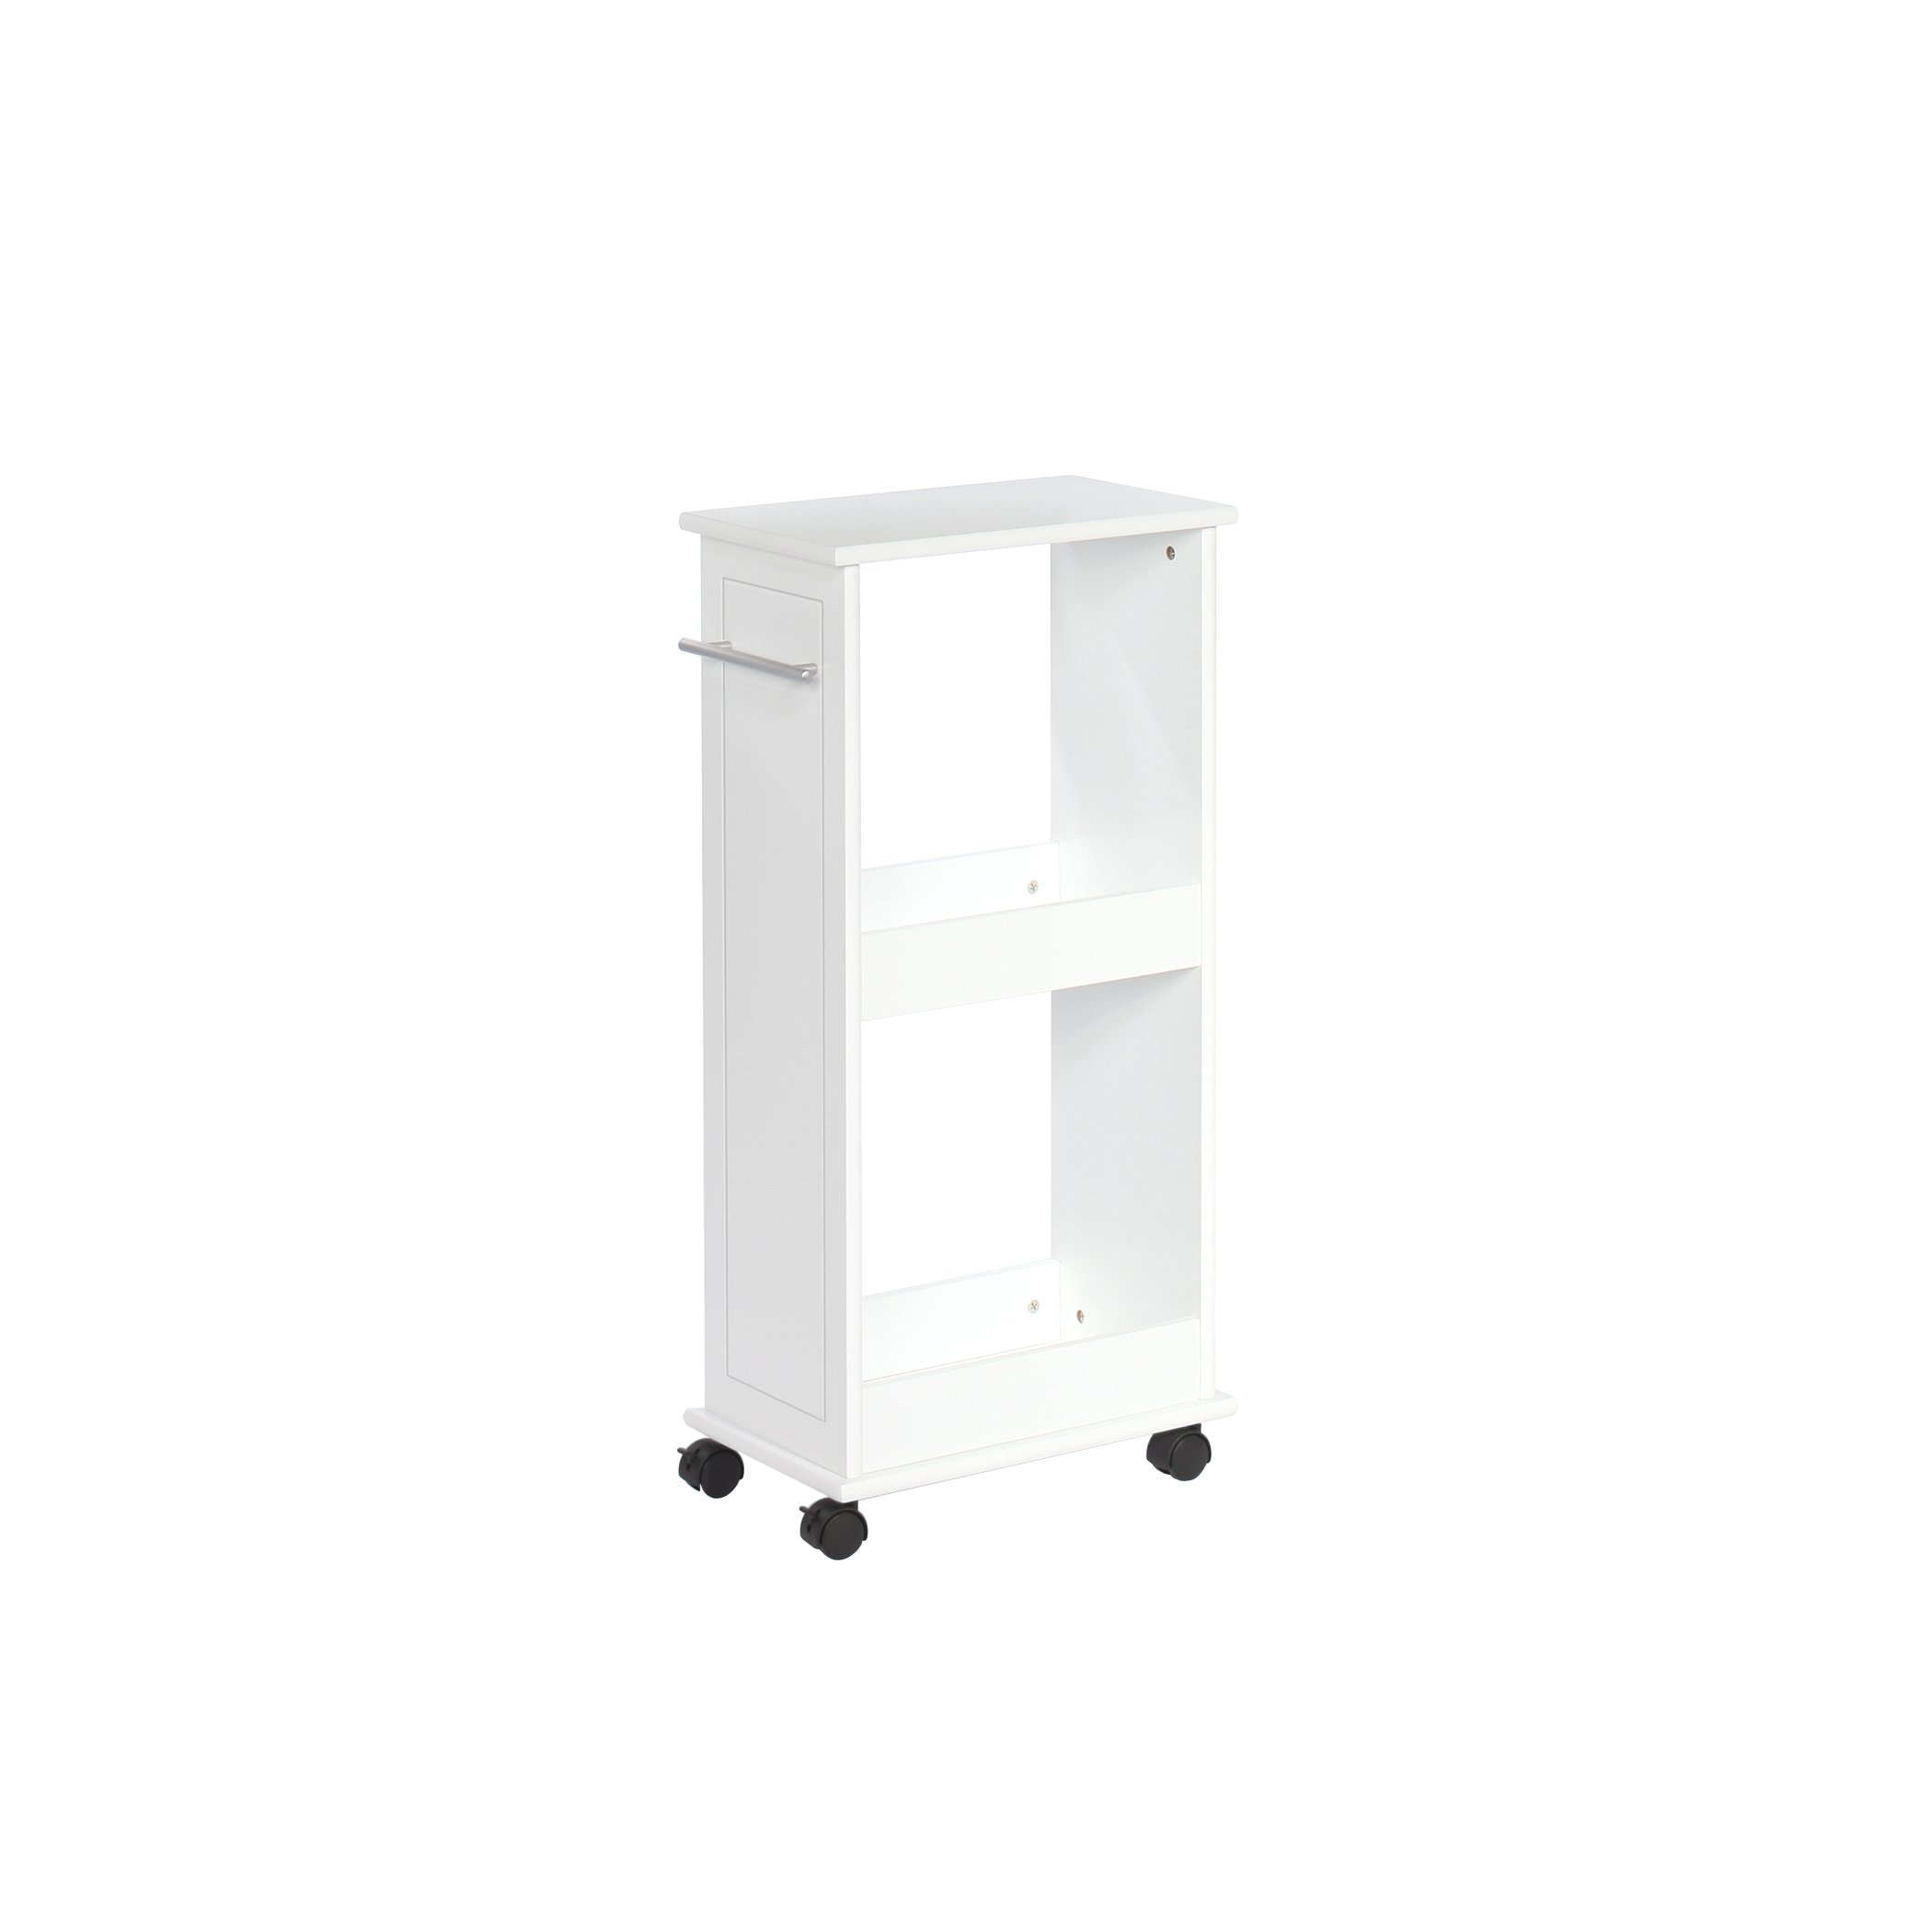 RiverRidge Rolling Side Cabinet with Shelves, White